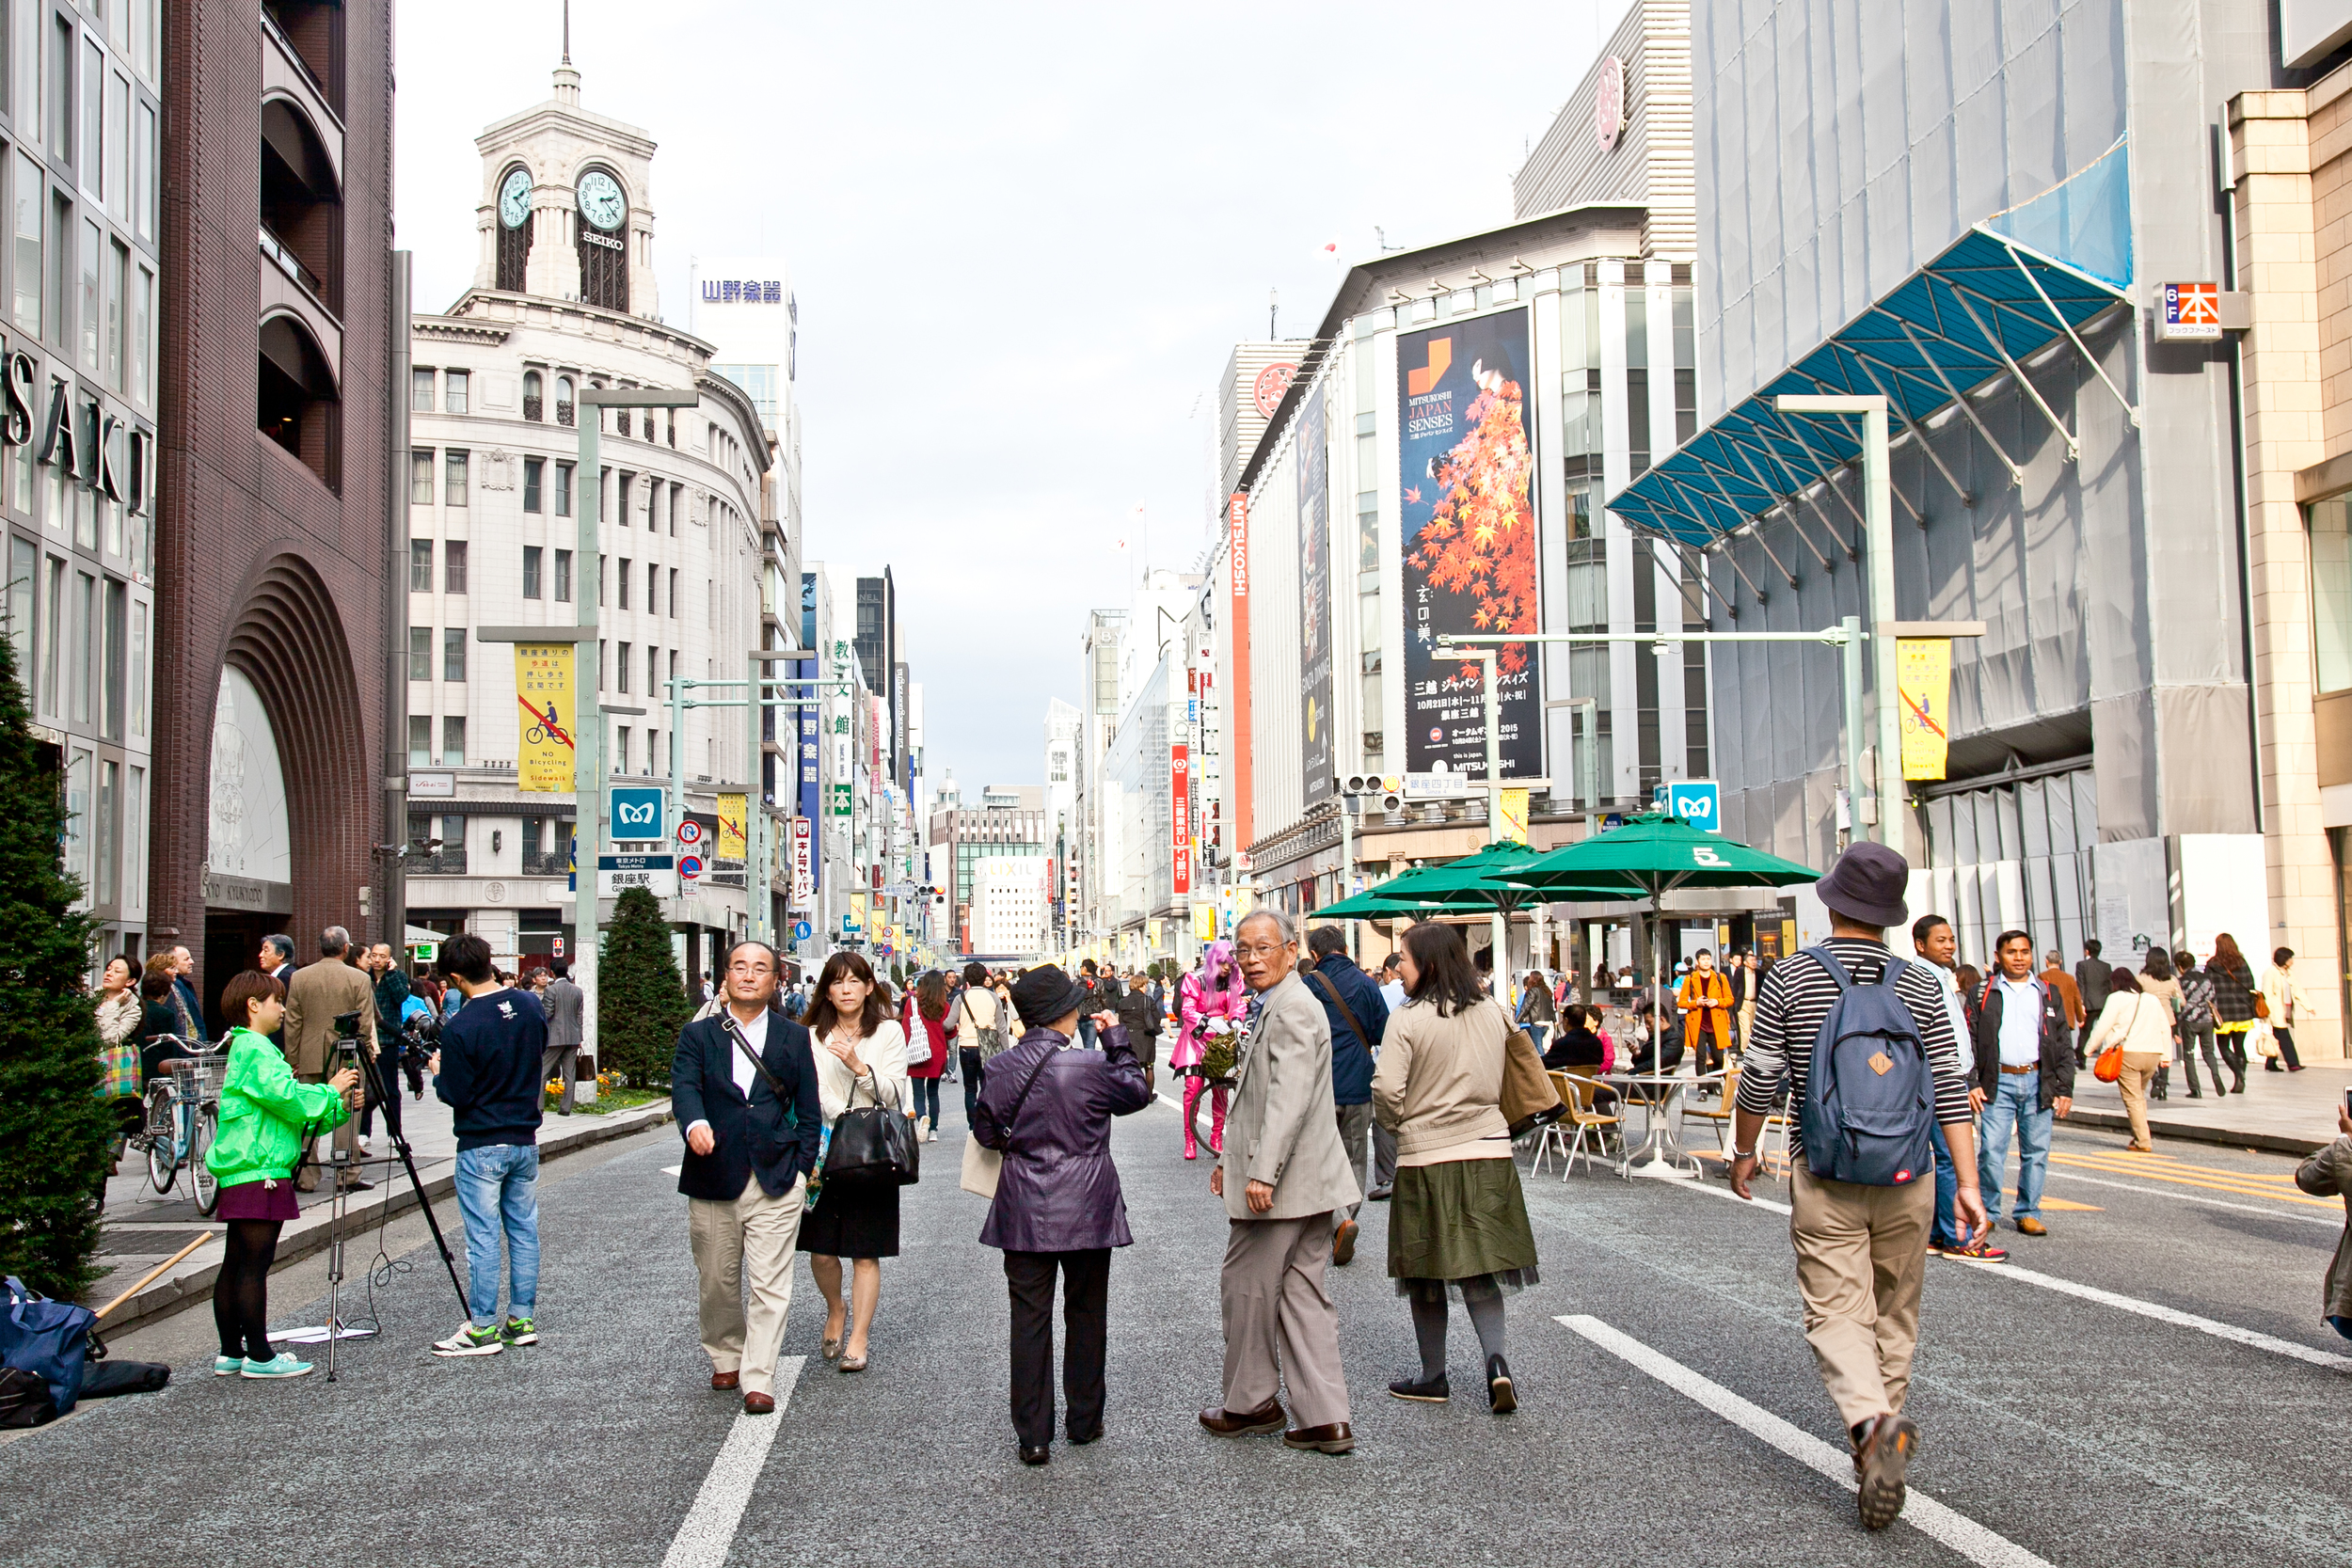 On special weekends, the streets of Ginza are closed to traffic, allowing shoppers to wander the streets freely